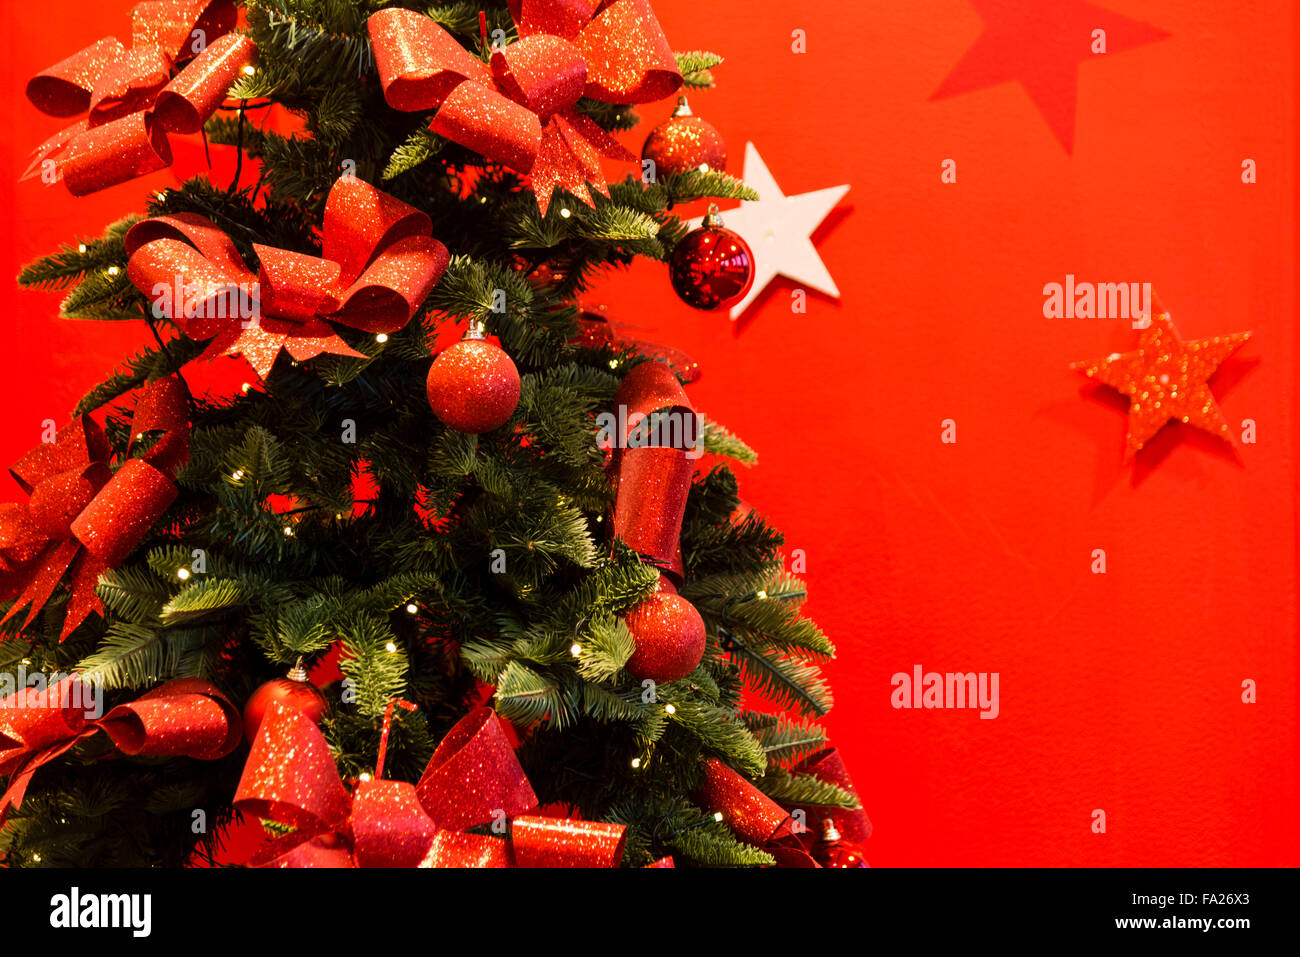 Christmas tree decorated with red baubles & ribbons, UK. - Stock Image